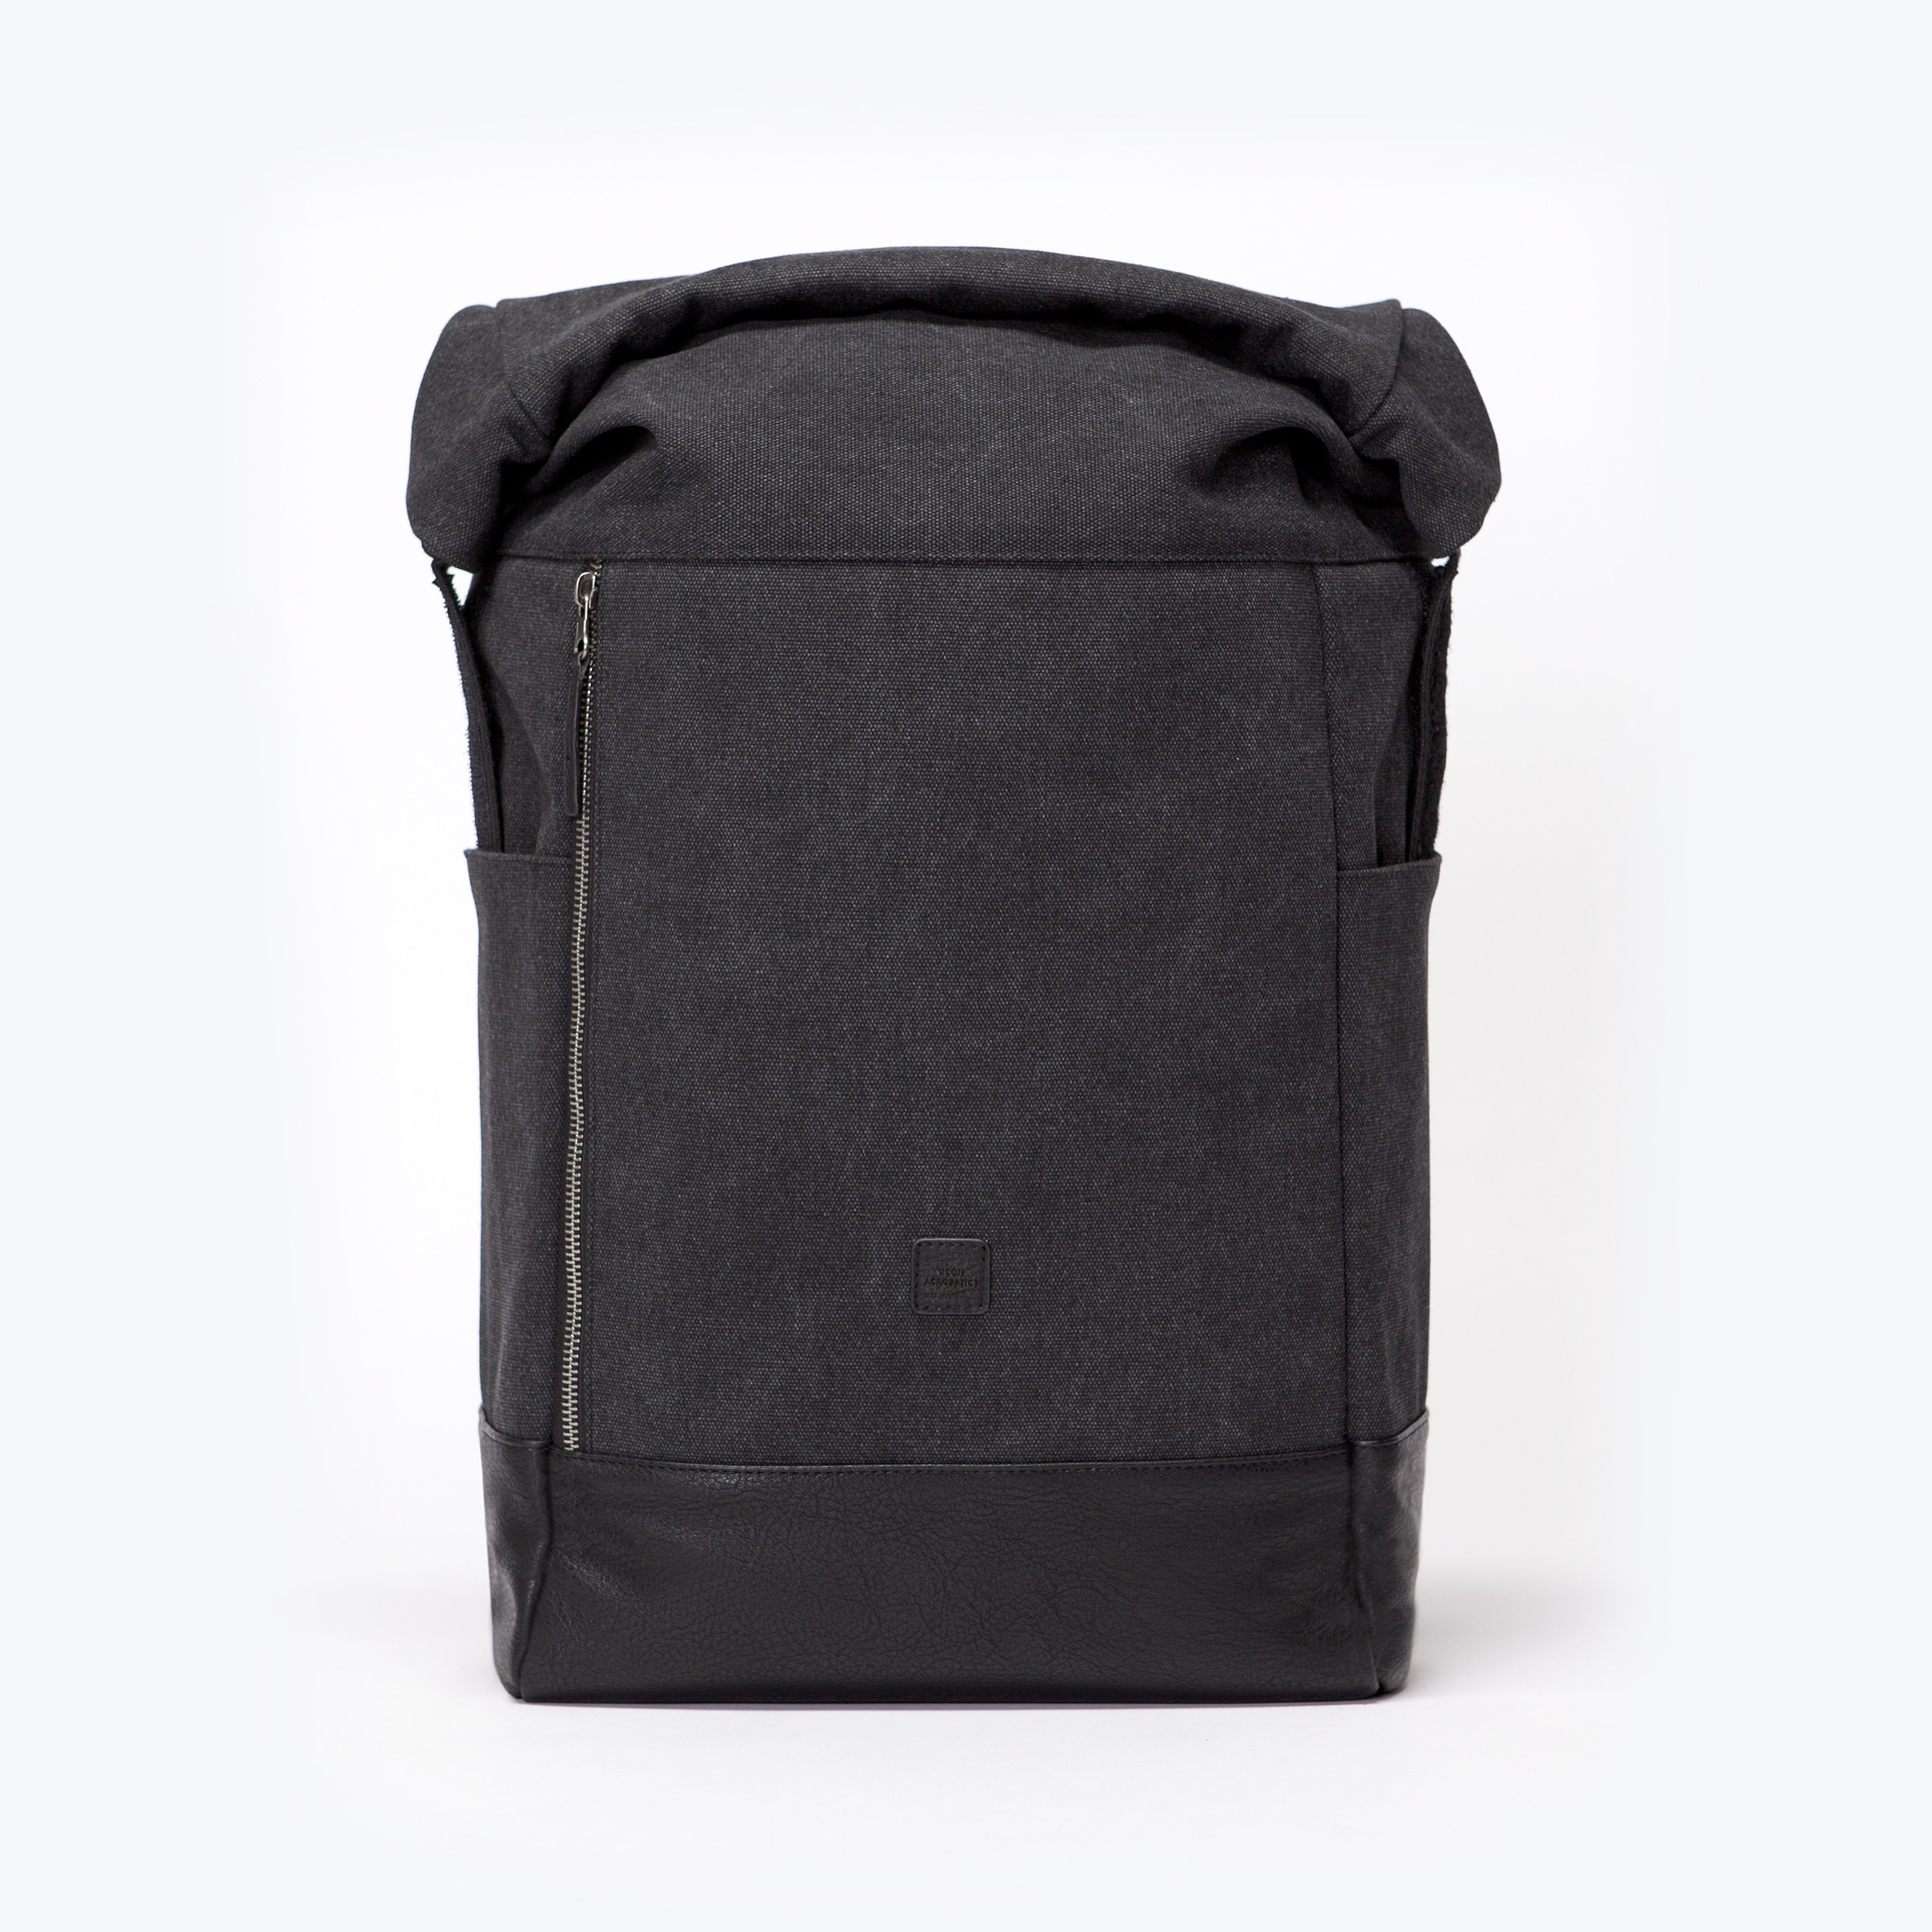 UA-BP-12_Garmond-Backpack_Black_04.jpg